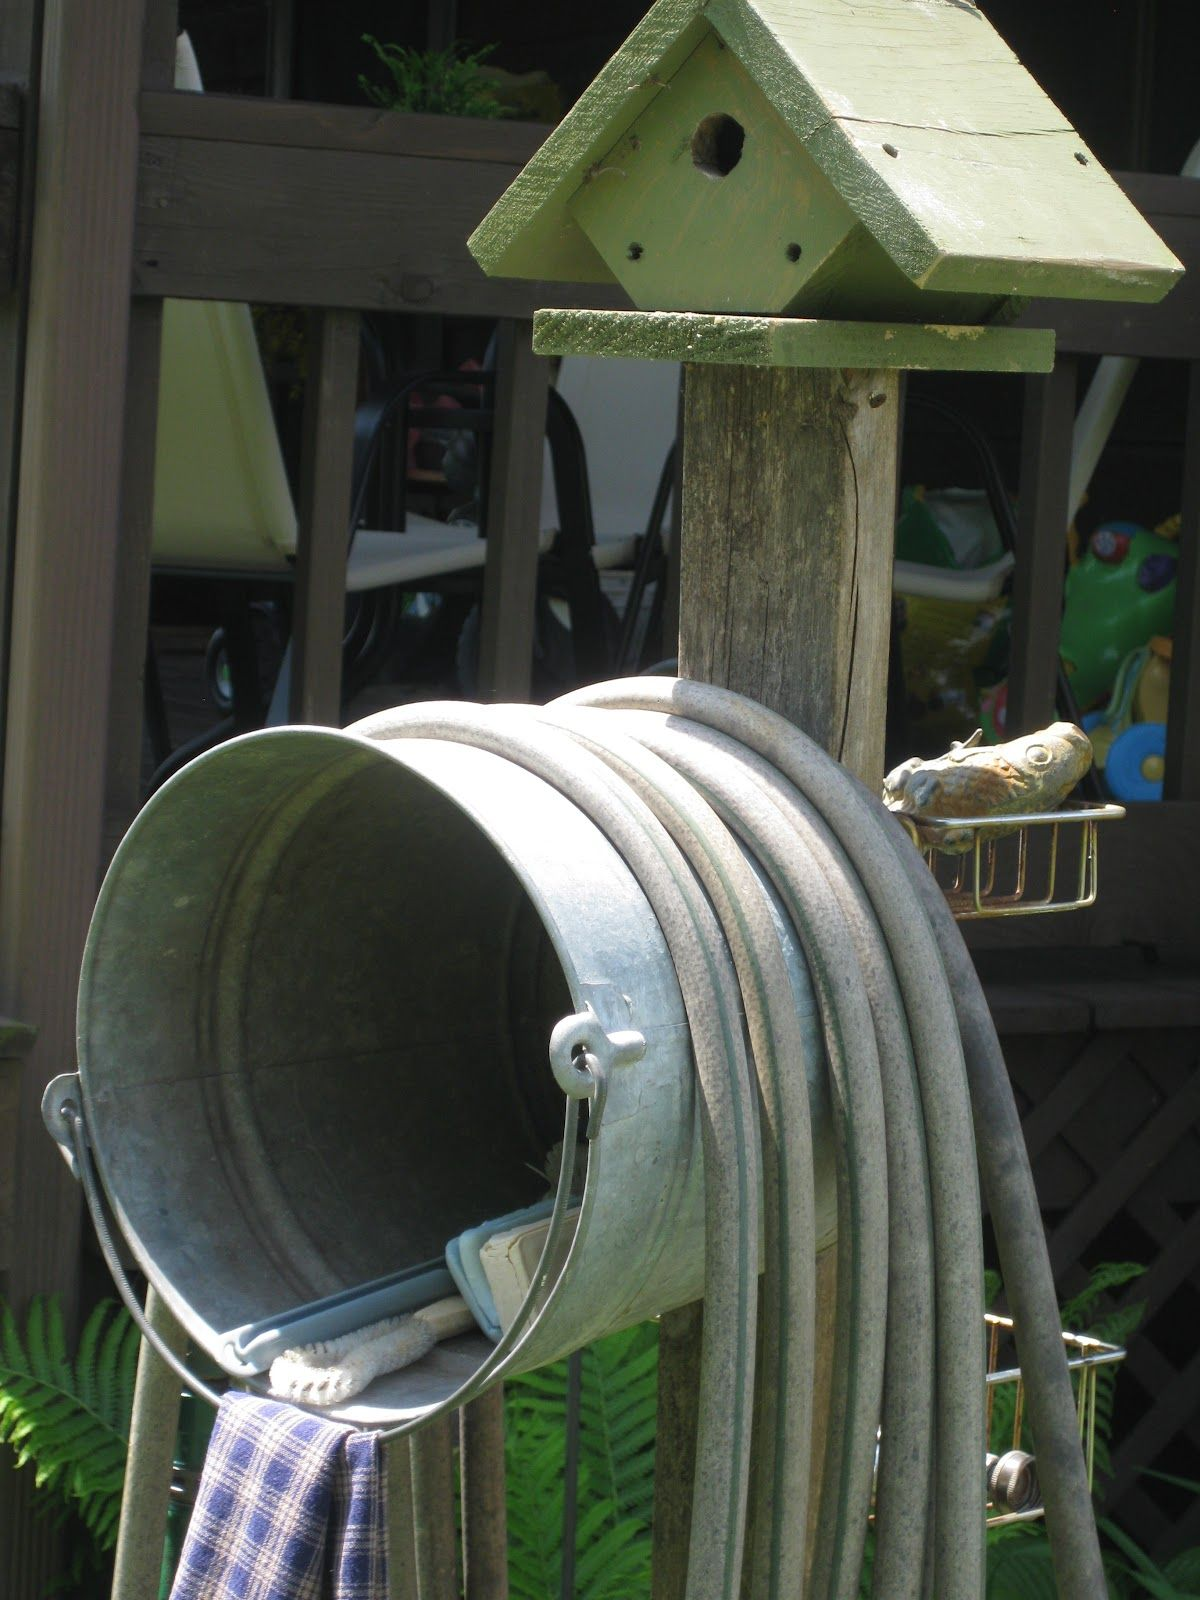 Nice What A Cute Way To Store Hose And Other Often Used Garden Tools Etc. I Have  Got To Make One Of These And Put My Own Birdhouses On Top Of The Post!